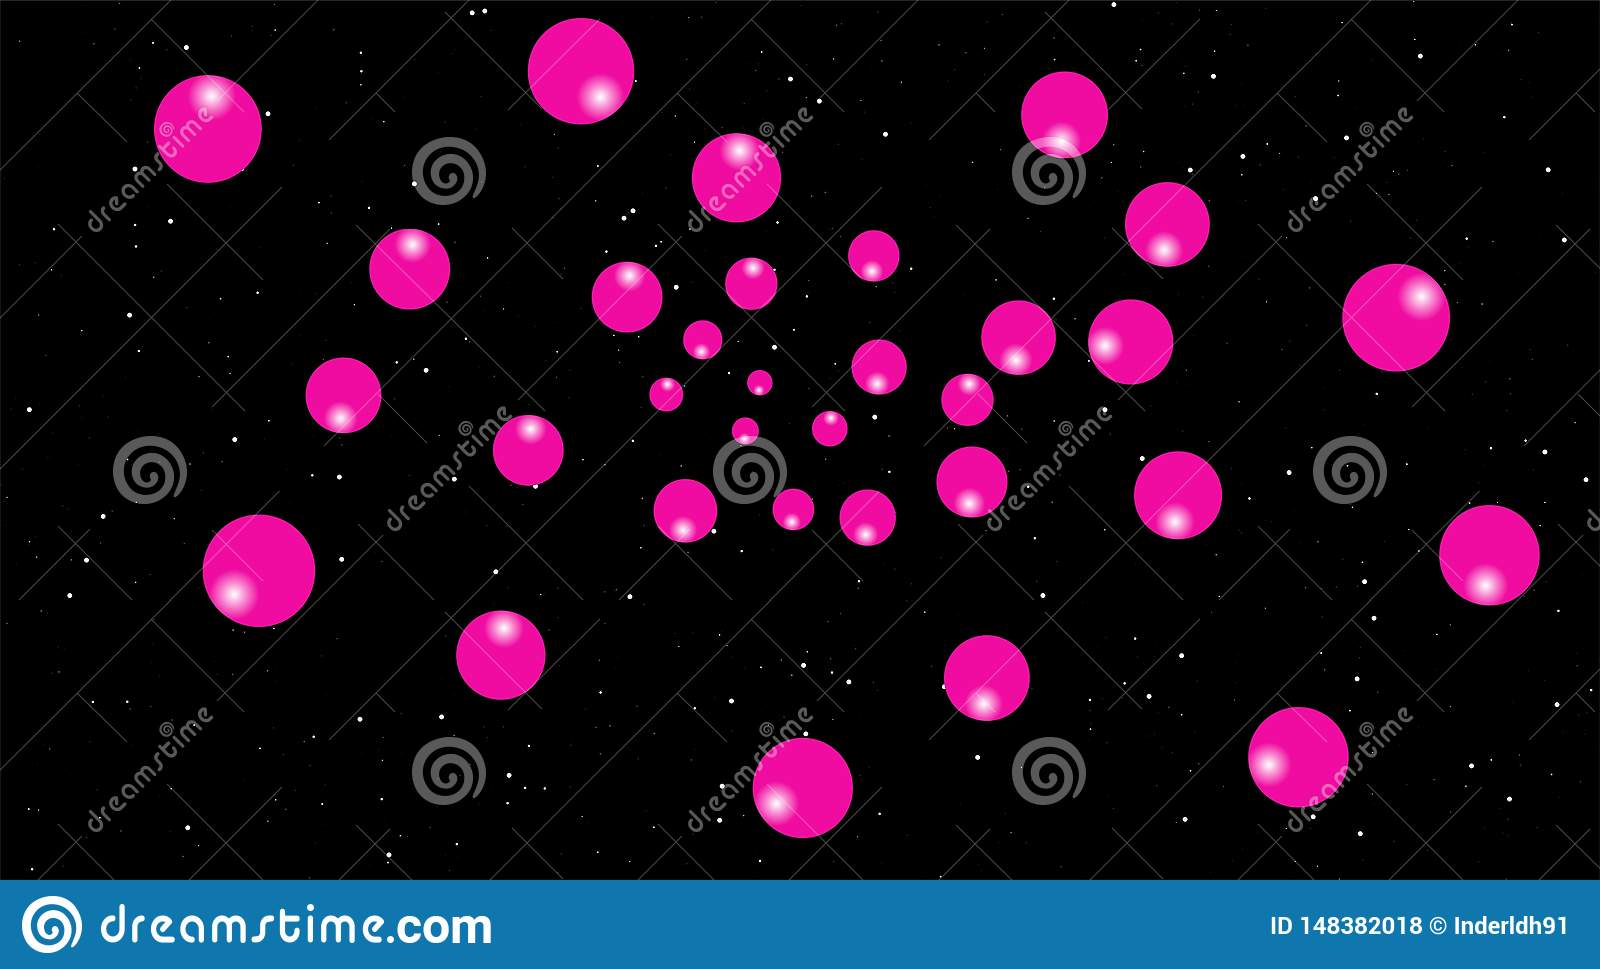 Pink Balloons In Night Scenes Black Background Pink Moon